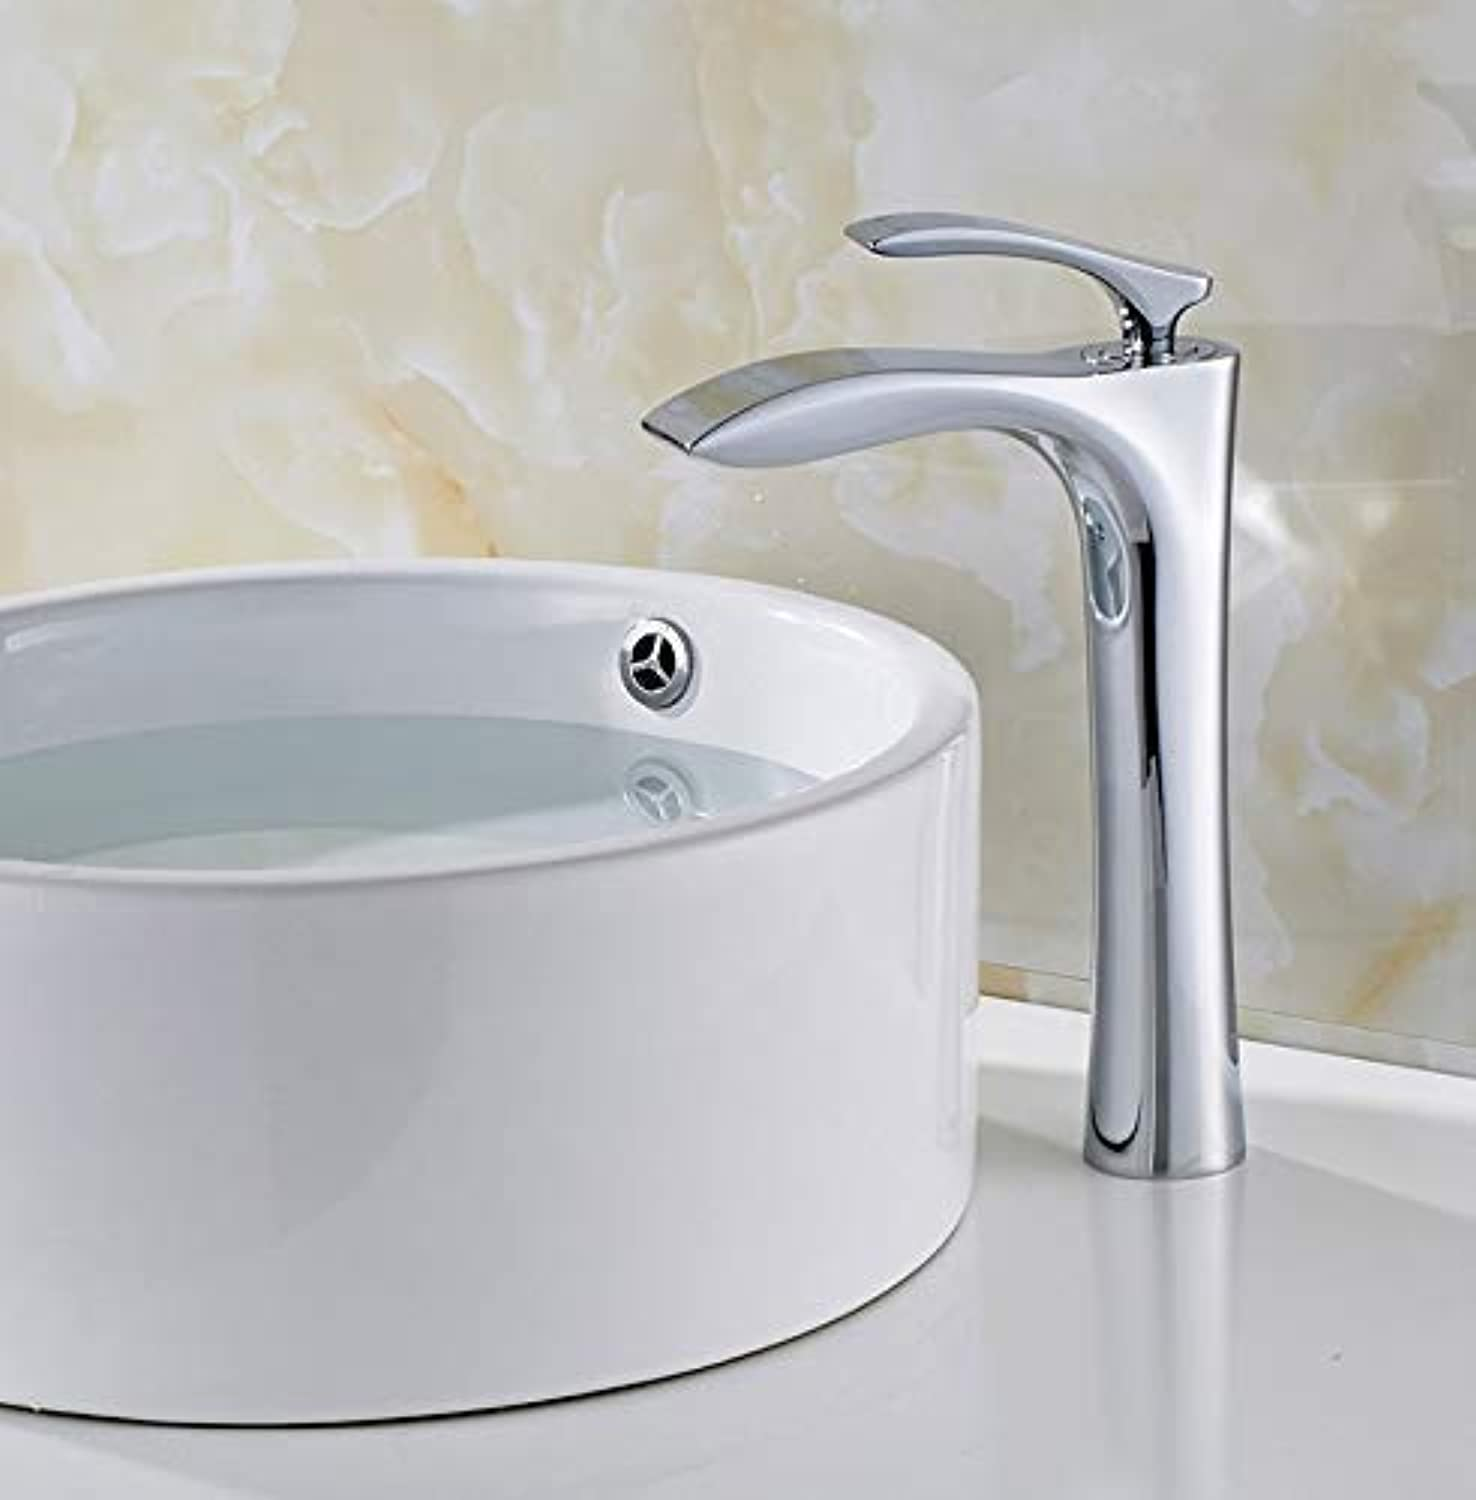 Oudan Taps Fountain Basin Faucet Cold And Hot Bathroom Tub Waterfall Faucet,Single Handle Single Hole Mixer Faucet Chrome Water Tap Taps (color   -, Size   -)